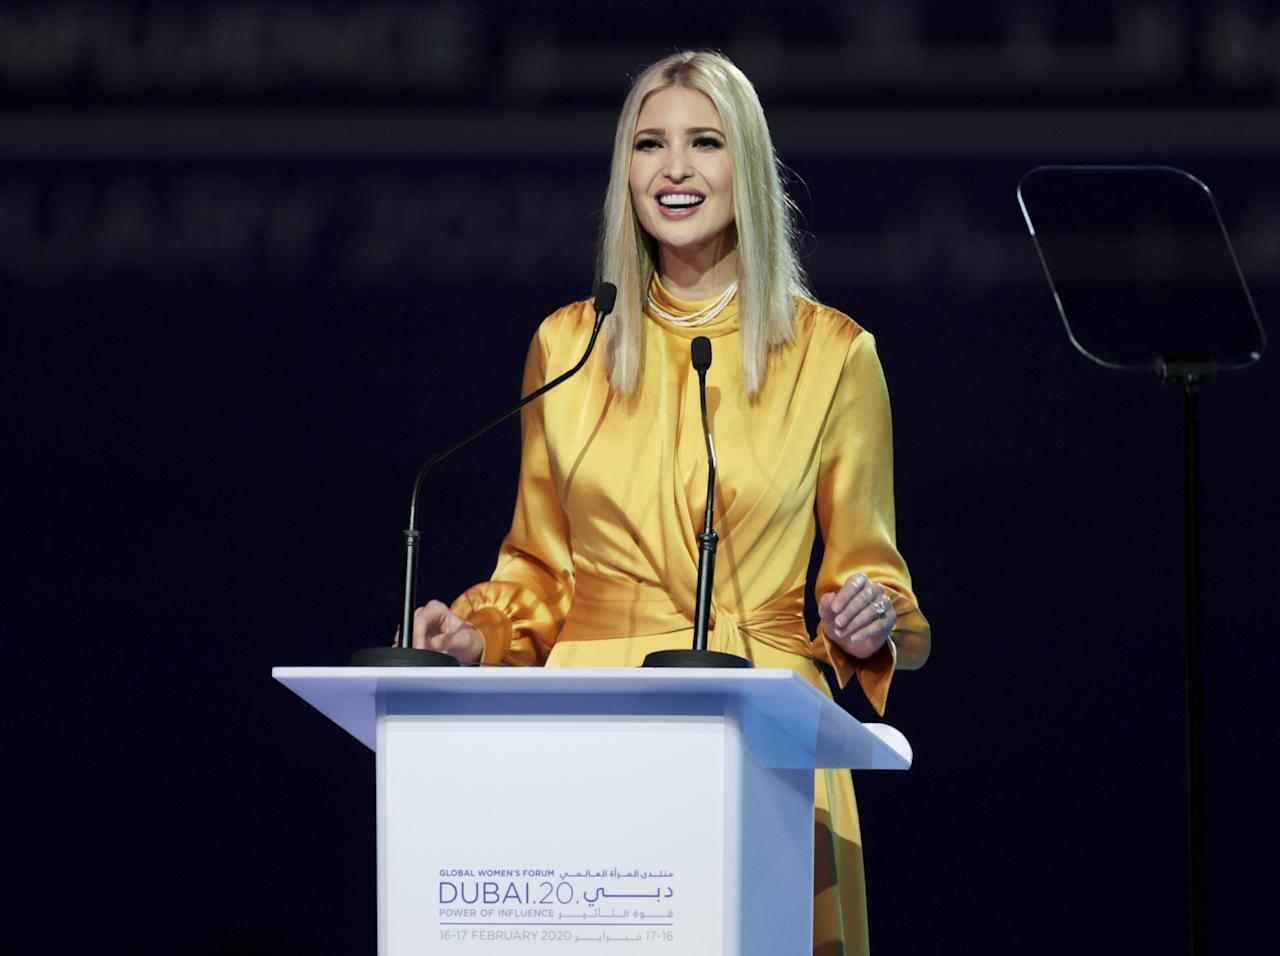 Ivana Marie 'Ivanka' Trump (born October 30, 1981 in New York City), also known as Yael Kushner is an American businesswoman and author serving as senior advisor to her father, President Donald J. Trump since 2017.